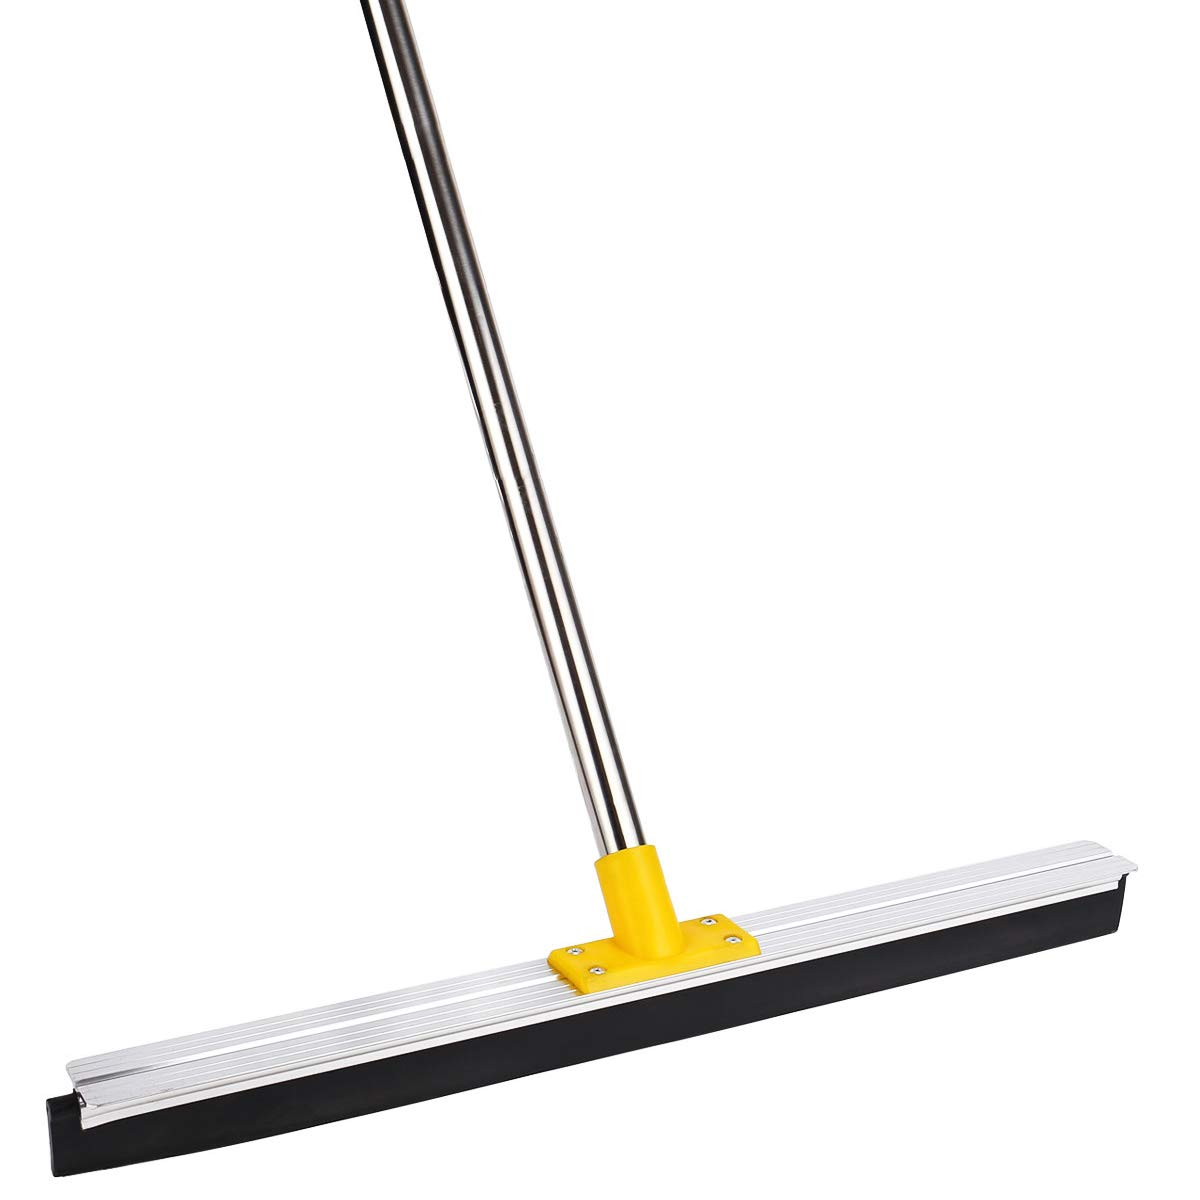 Commercial Heavy Duty Floor Squeegee, YCUTE 23'' Rubber Blade, 50'' Stainless Steel Long Handle Perfect for Washing & Drying Tile Glass Marble and Wood Surfaces